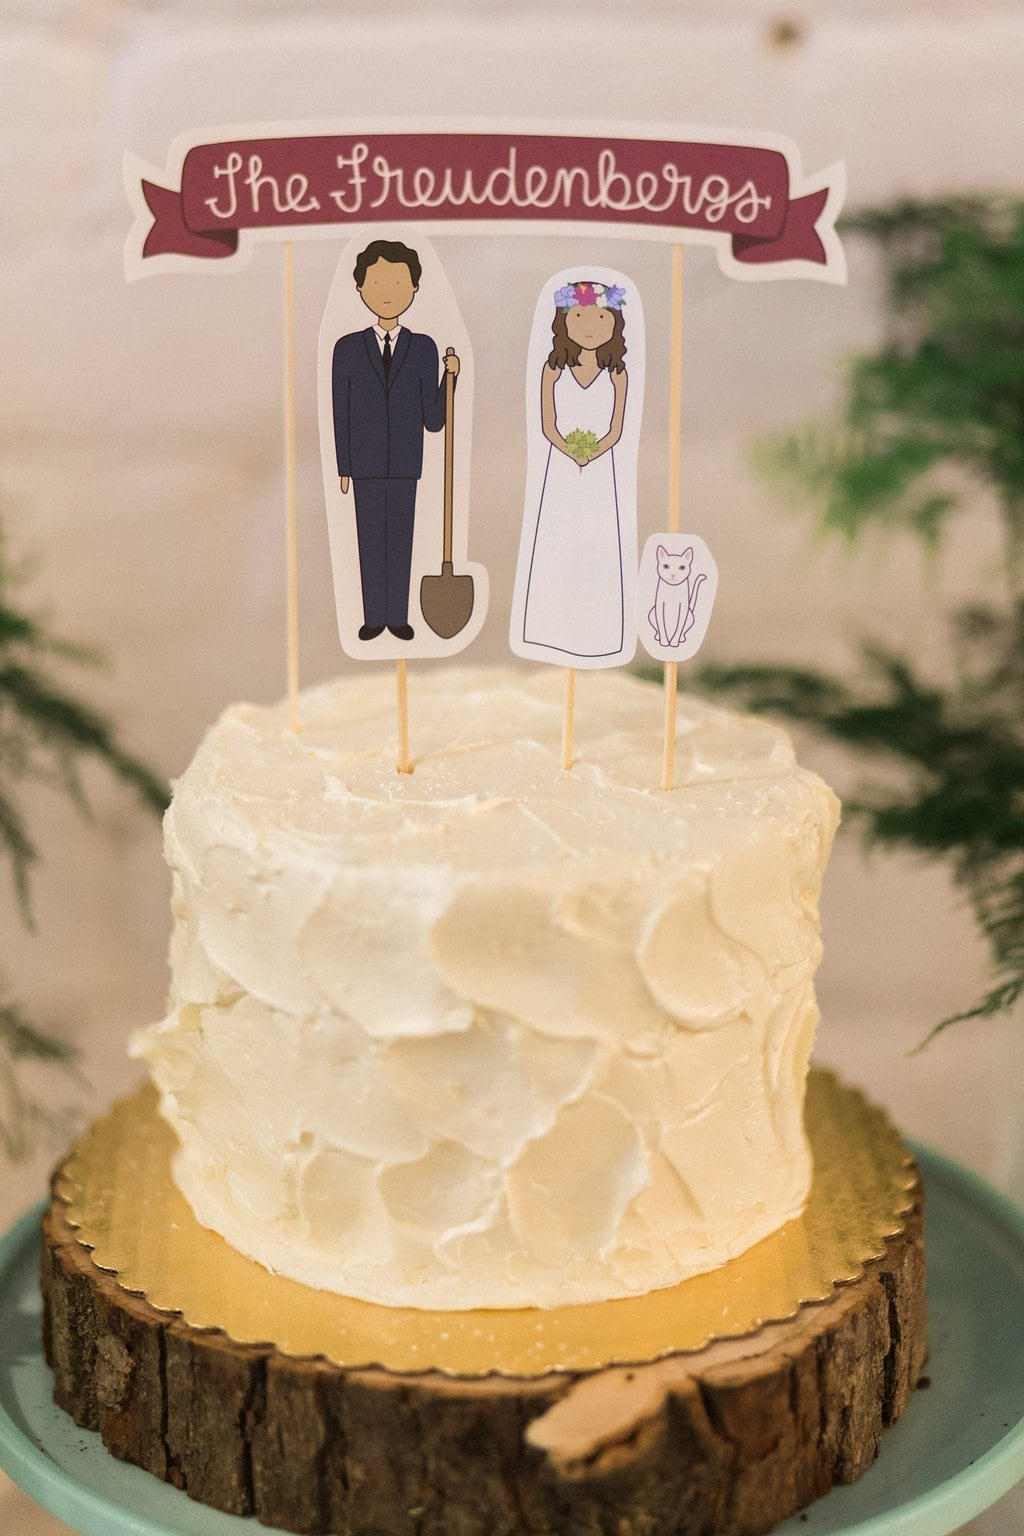 Small white cake with paper bride and groom toppers